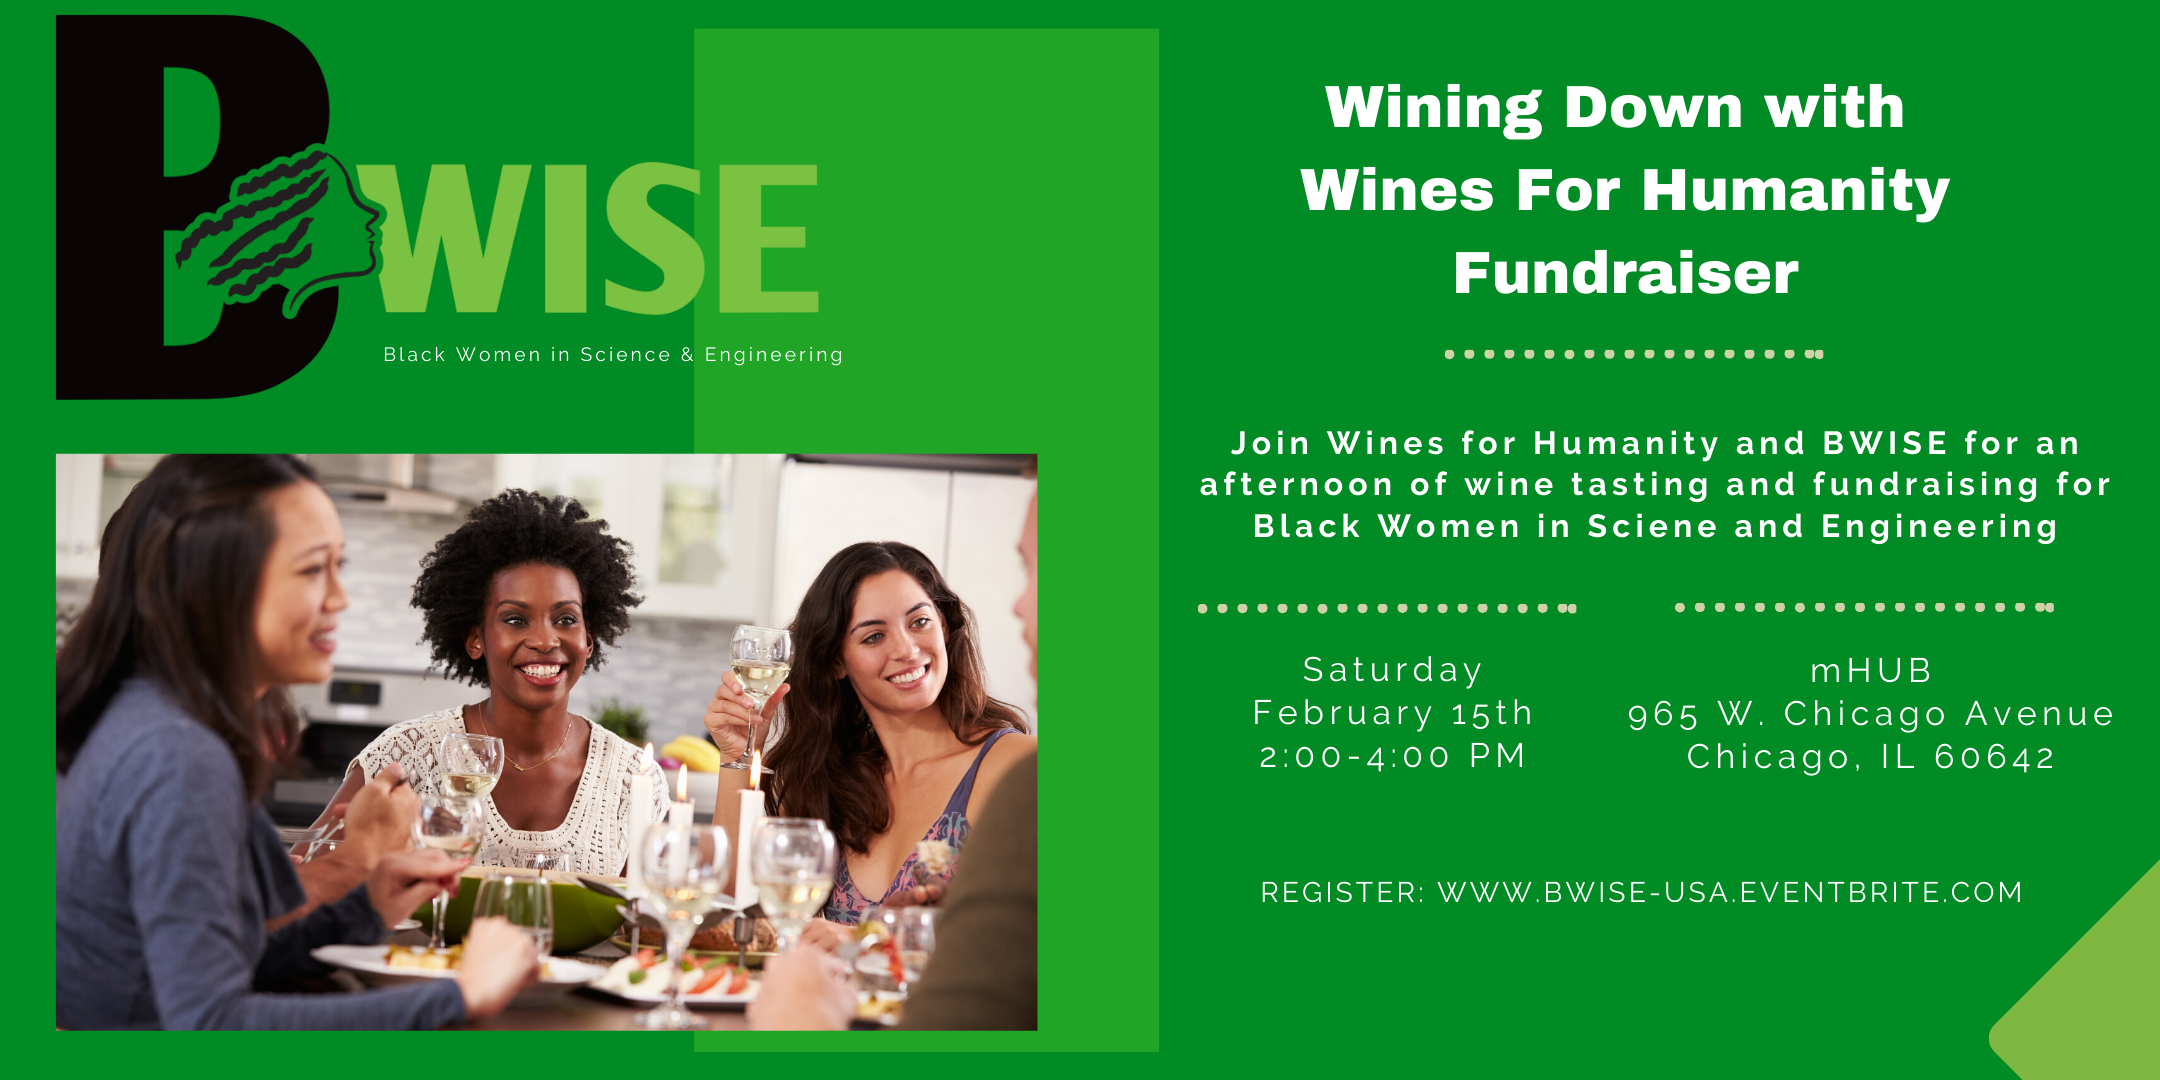 BWISE: Wining Down with Wines for Humanity